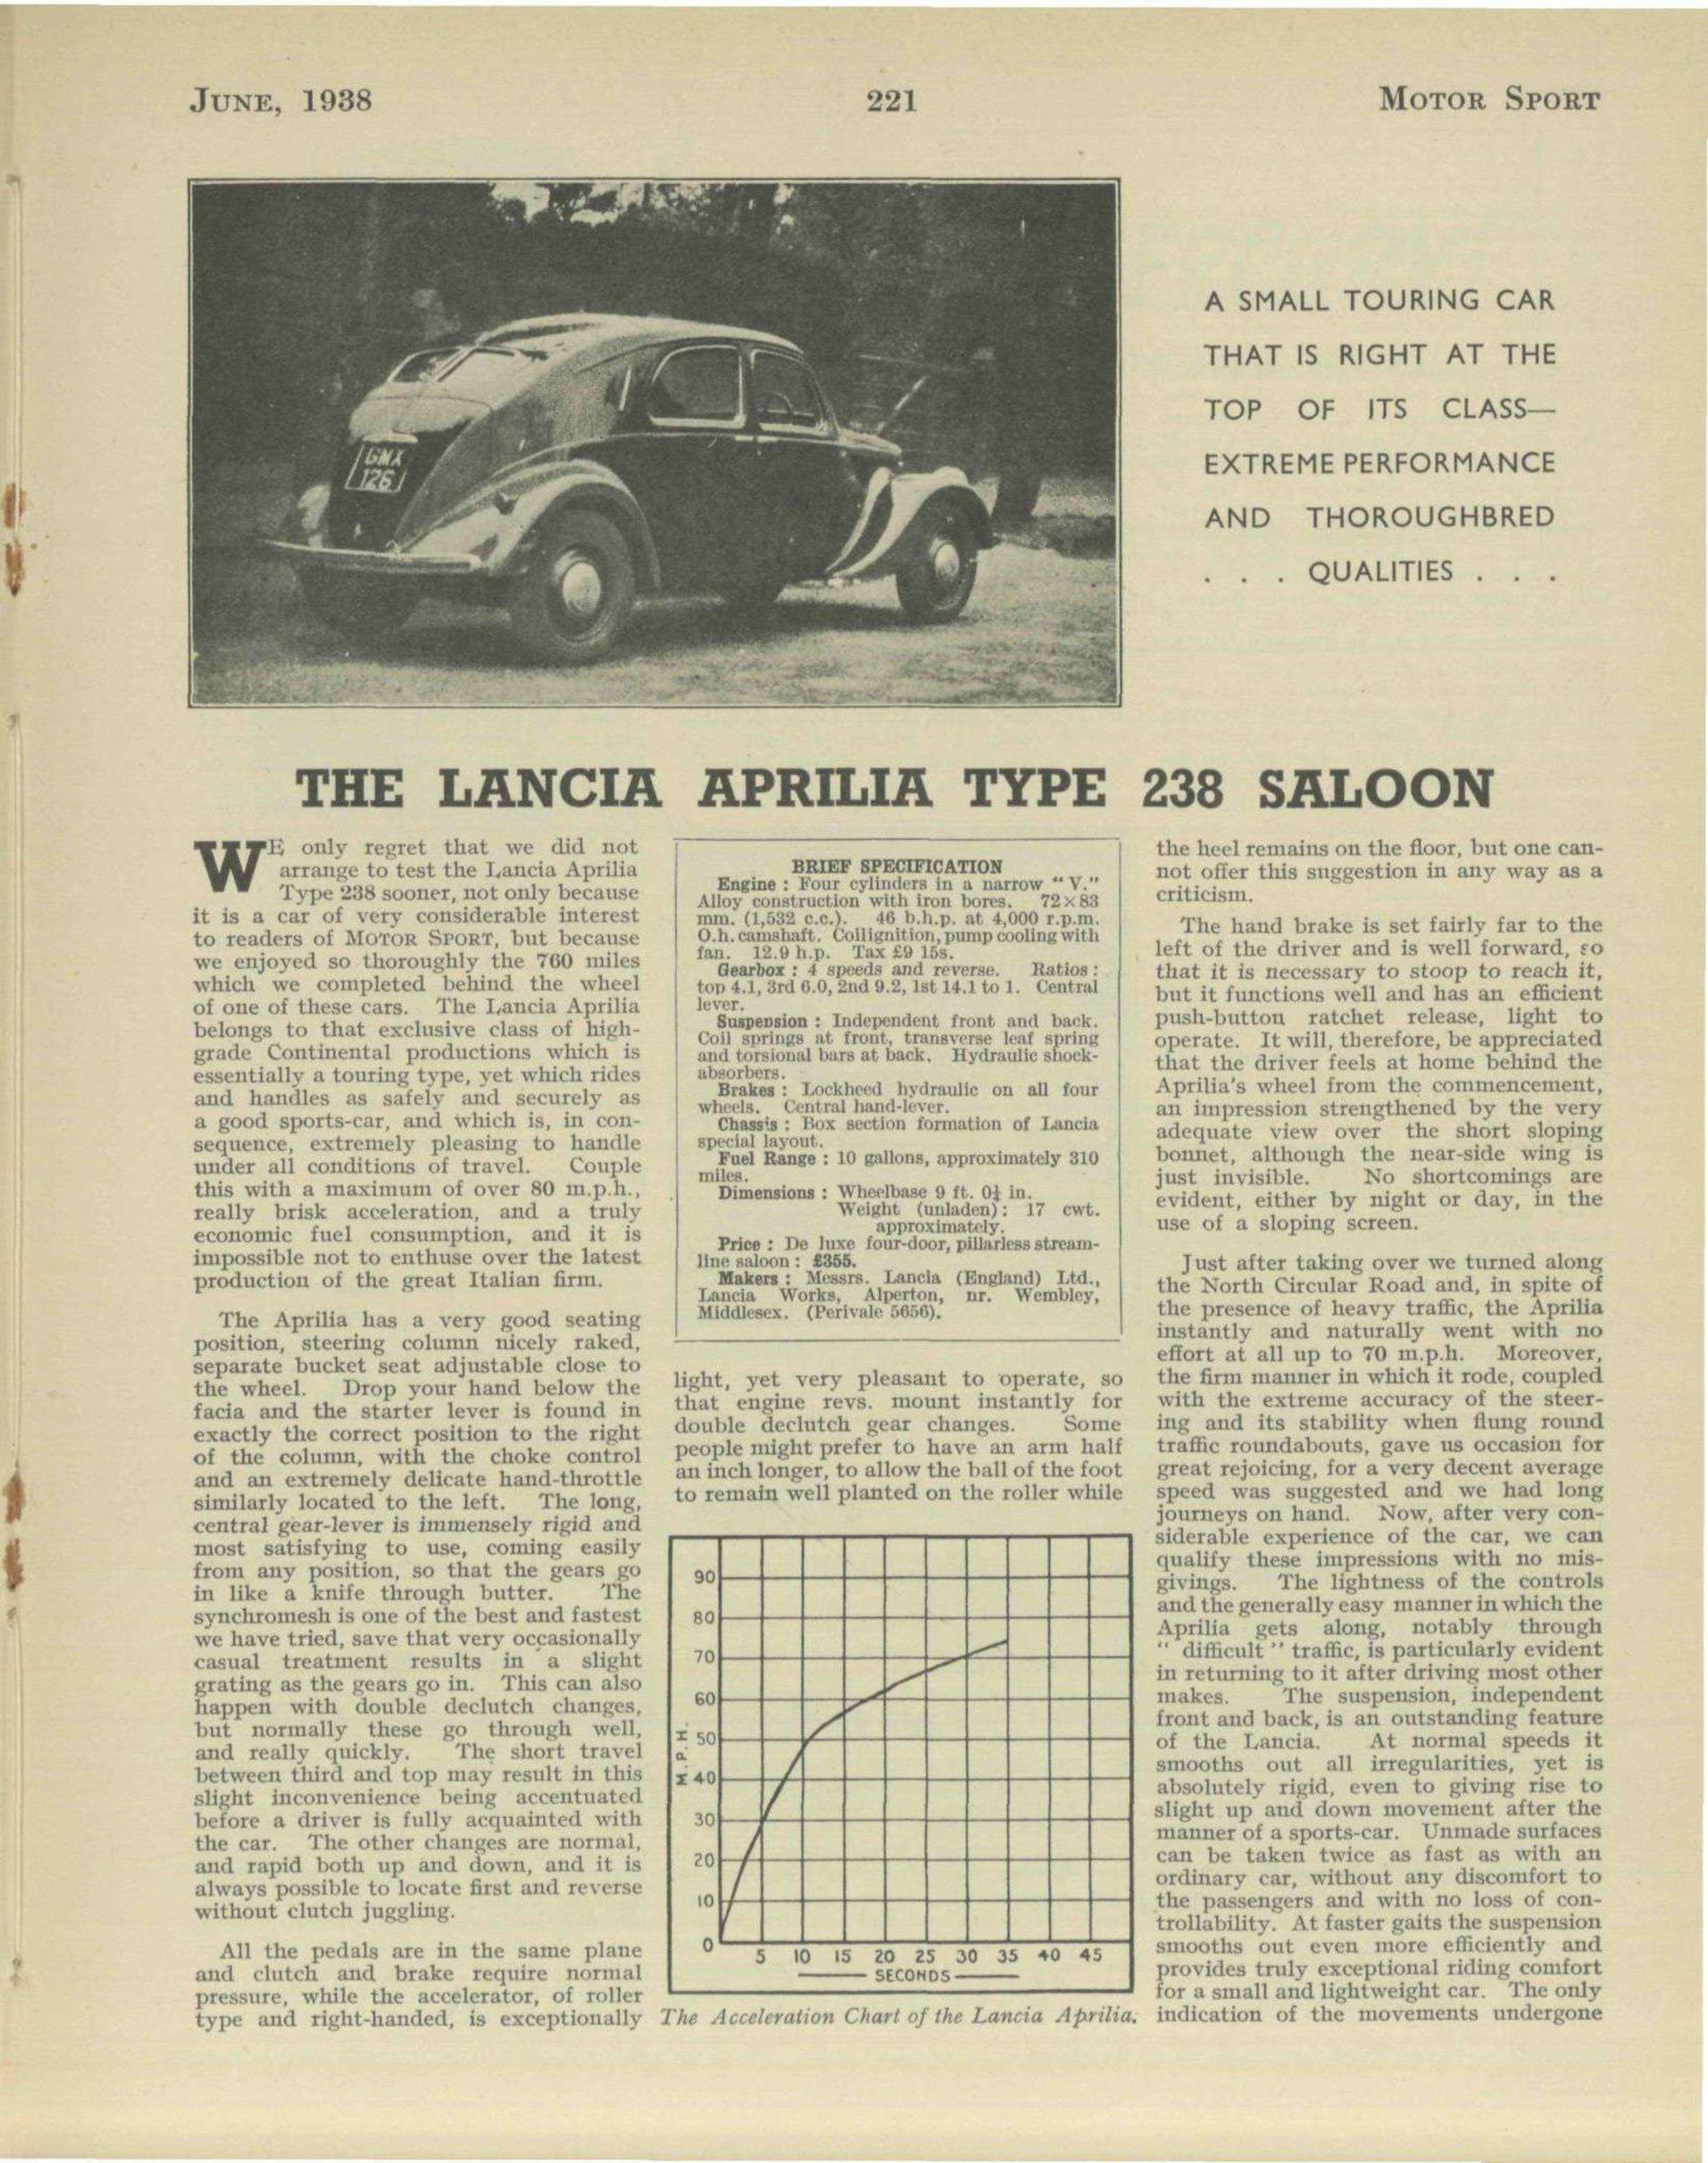 The lancia aprilia type 238 saloon motor sport magazine archive close vanachro Choice Image